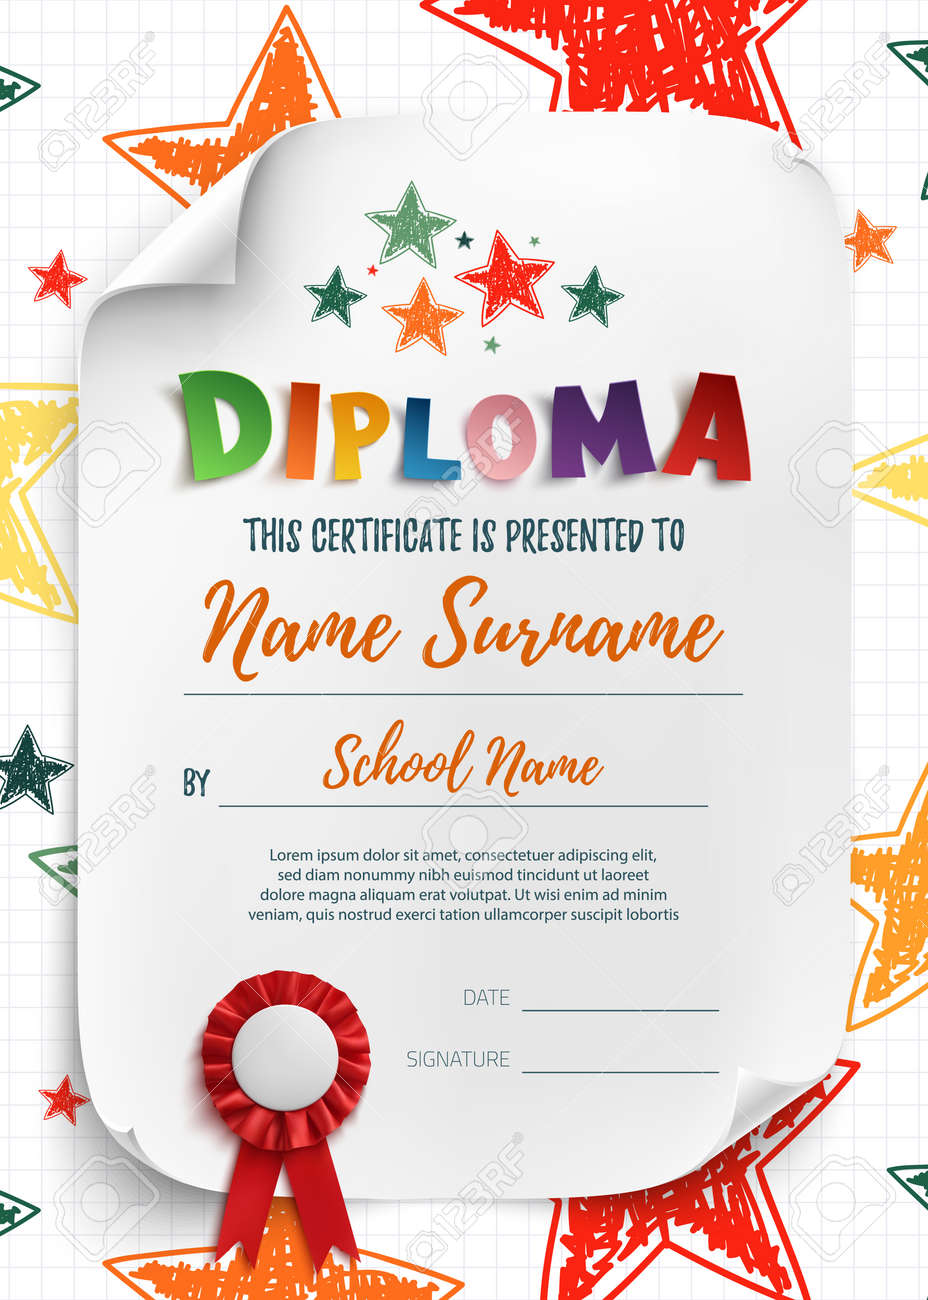 Diploma template for kids certificate background with hand drawn diploma template for kids certificate background with hand drawn stars for school preschool or yelopaper Image collections